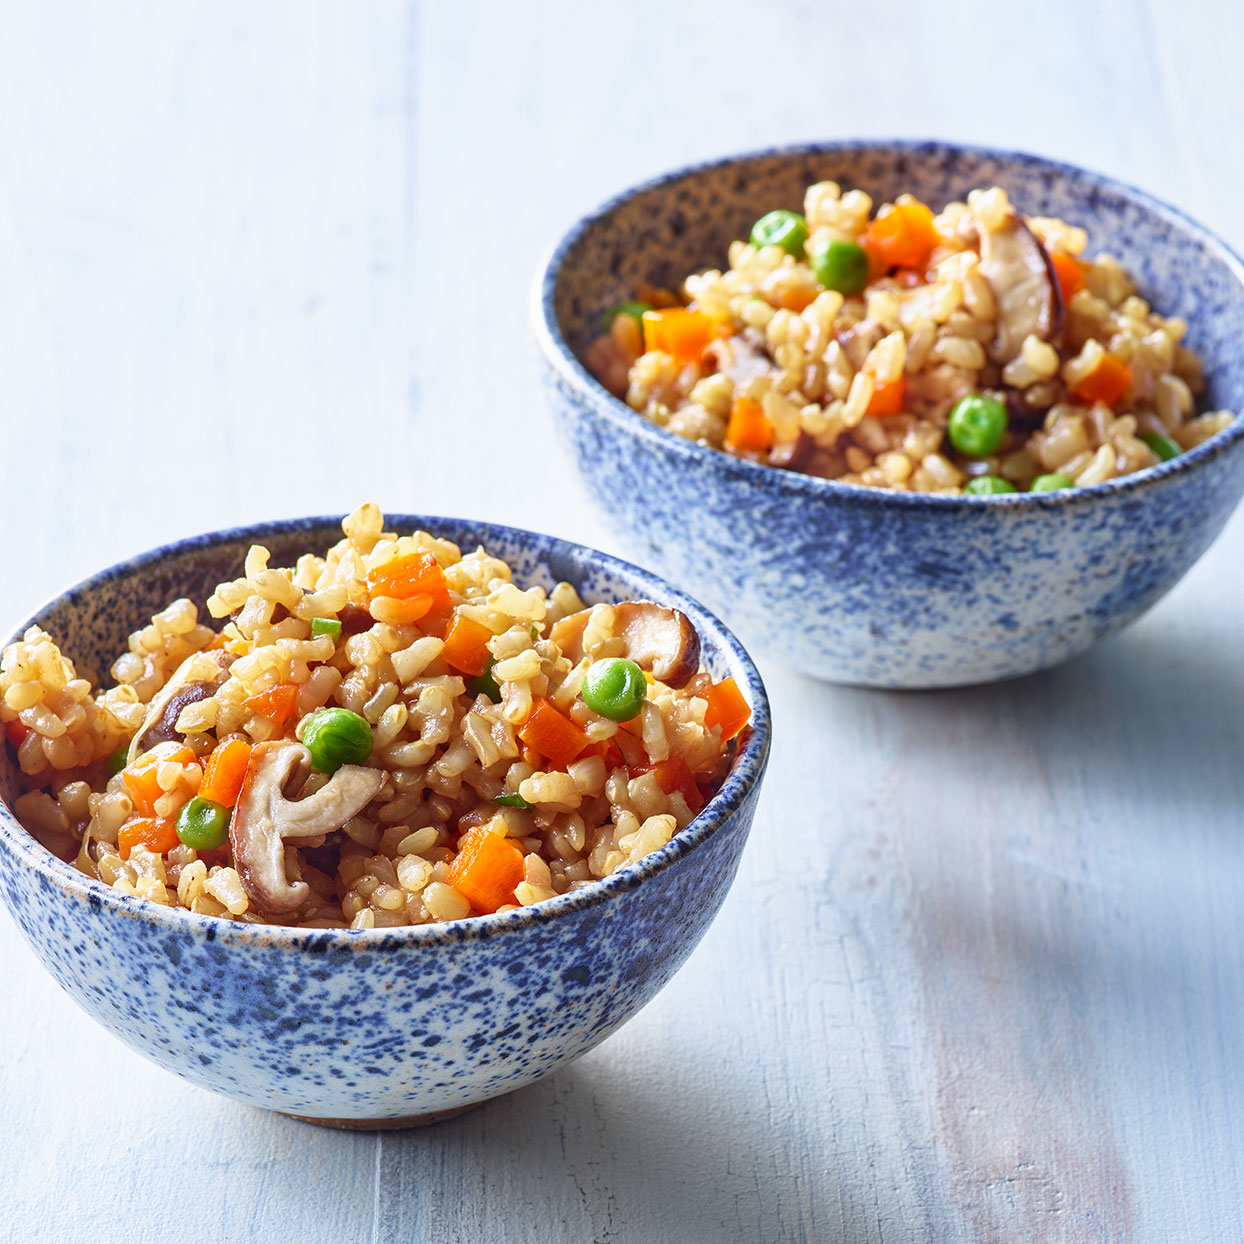 Dashi gives this vegetable rice recipe its savory depth. Rinsing the rice may seem like an extraneous step but it removes some of the surface starch for fluffier rice. And soaking the rice in seasoned dashi before cooking infuses the dish with more flavor. Source: EatingWell Magazine, May 2020